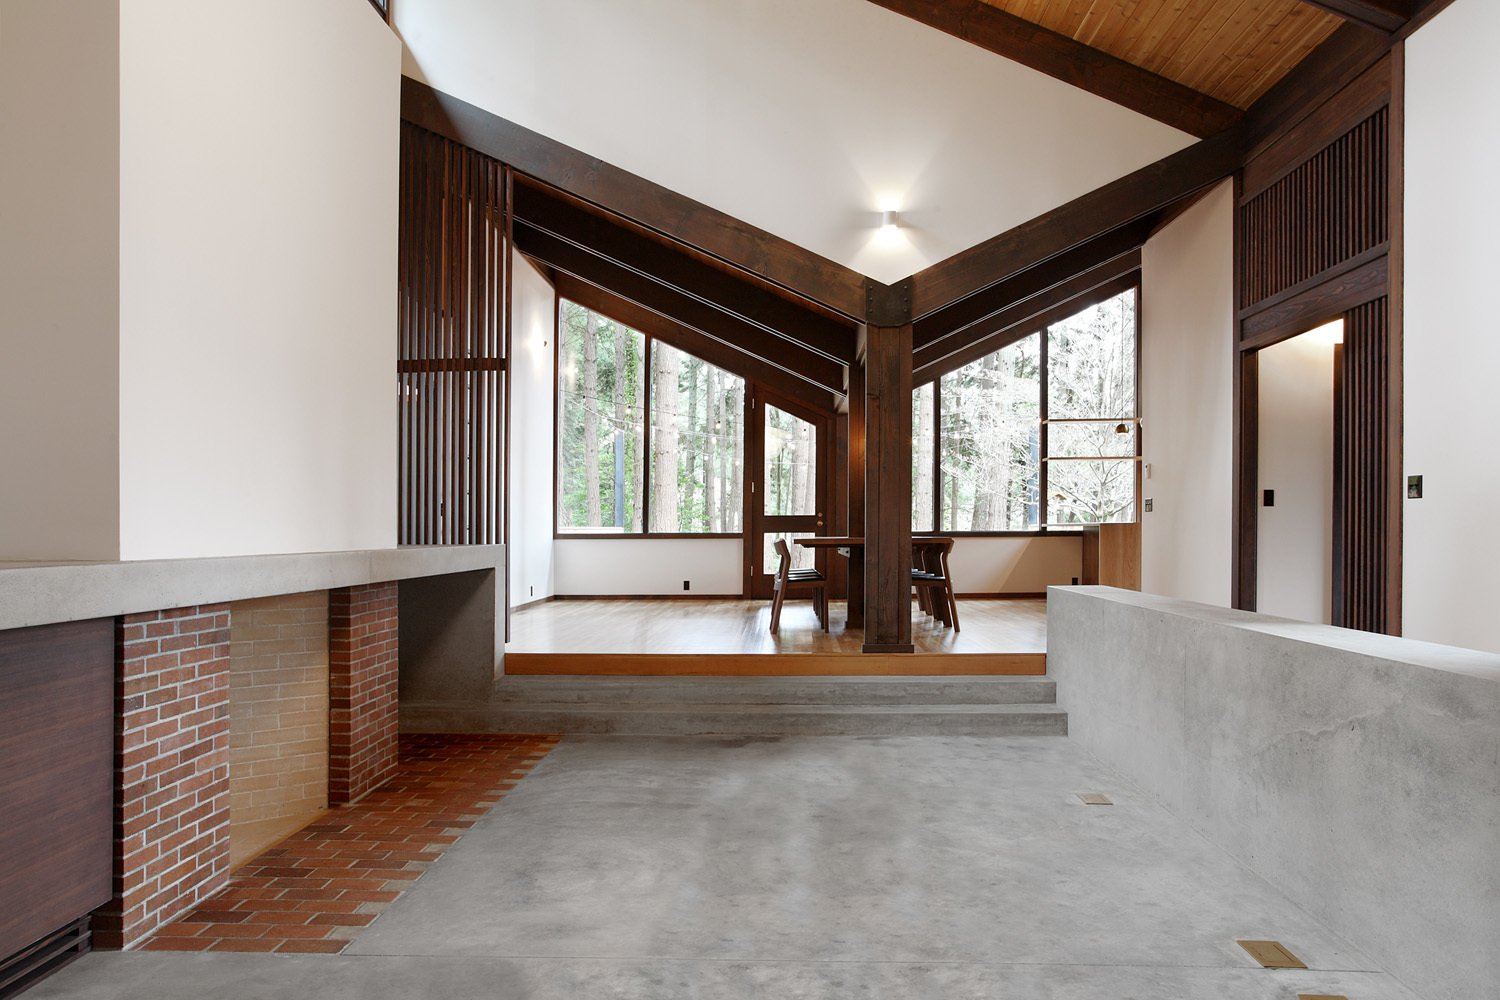 The dining room opens up to the new concrete hearth. Old plans indicate this area was originally intended to be an open courtyard, however, the original clients enclosed it with a leaky glass canopy. The architects installed a new sloped roof that quickly channels away rainfall. The fireplace is composed of brick salvaged from the original floor and the new concrete floor features increased insulation.  Midcentury Homes by Dwell from Zema Redux